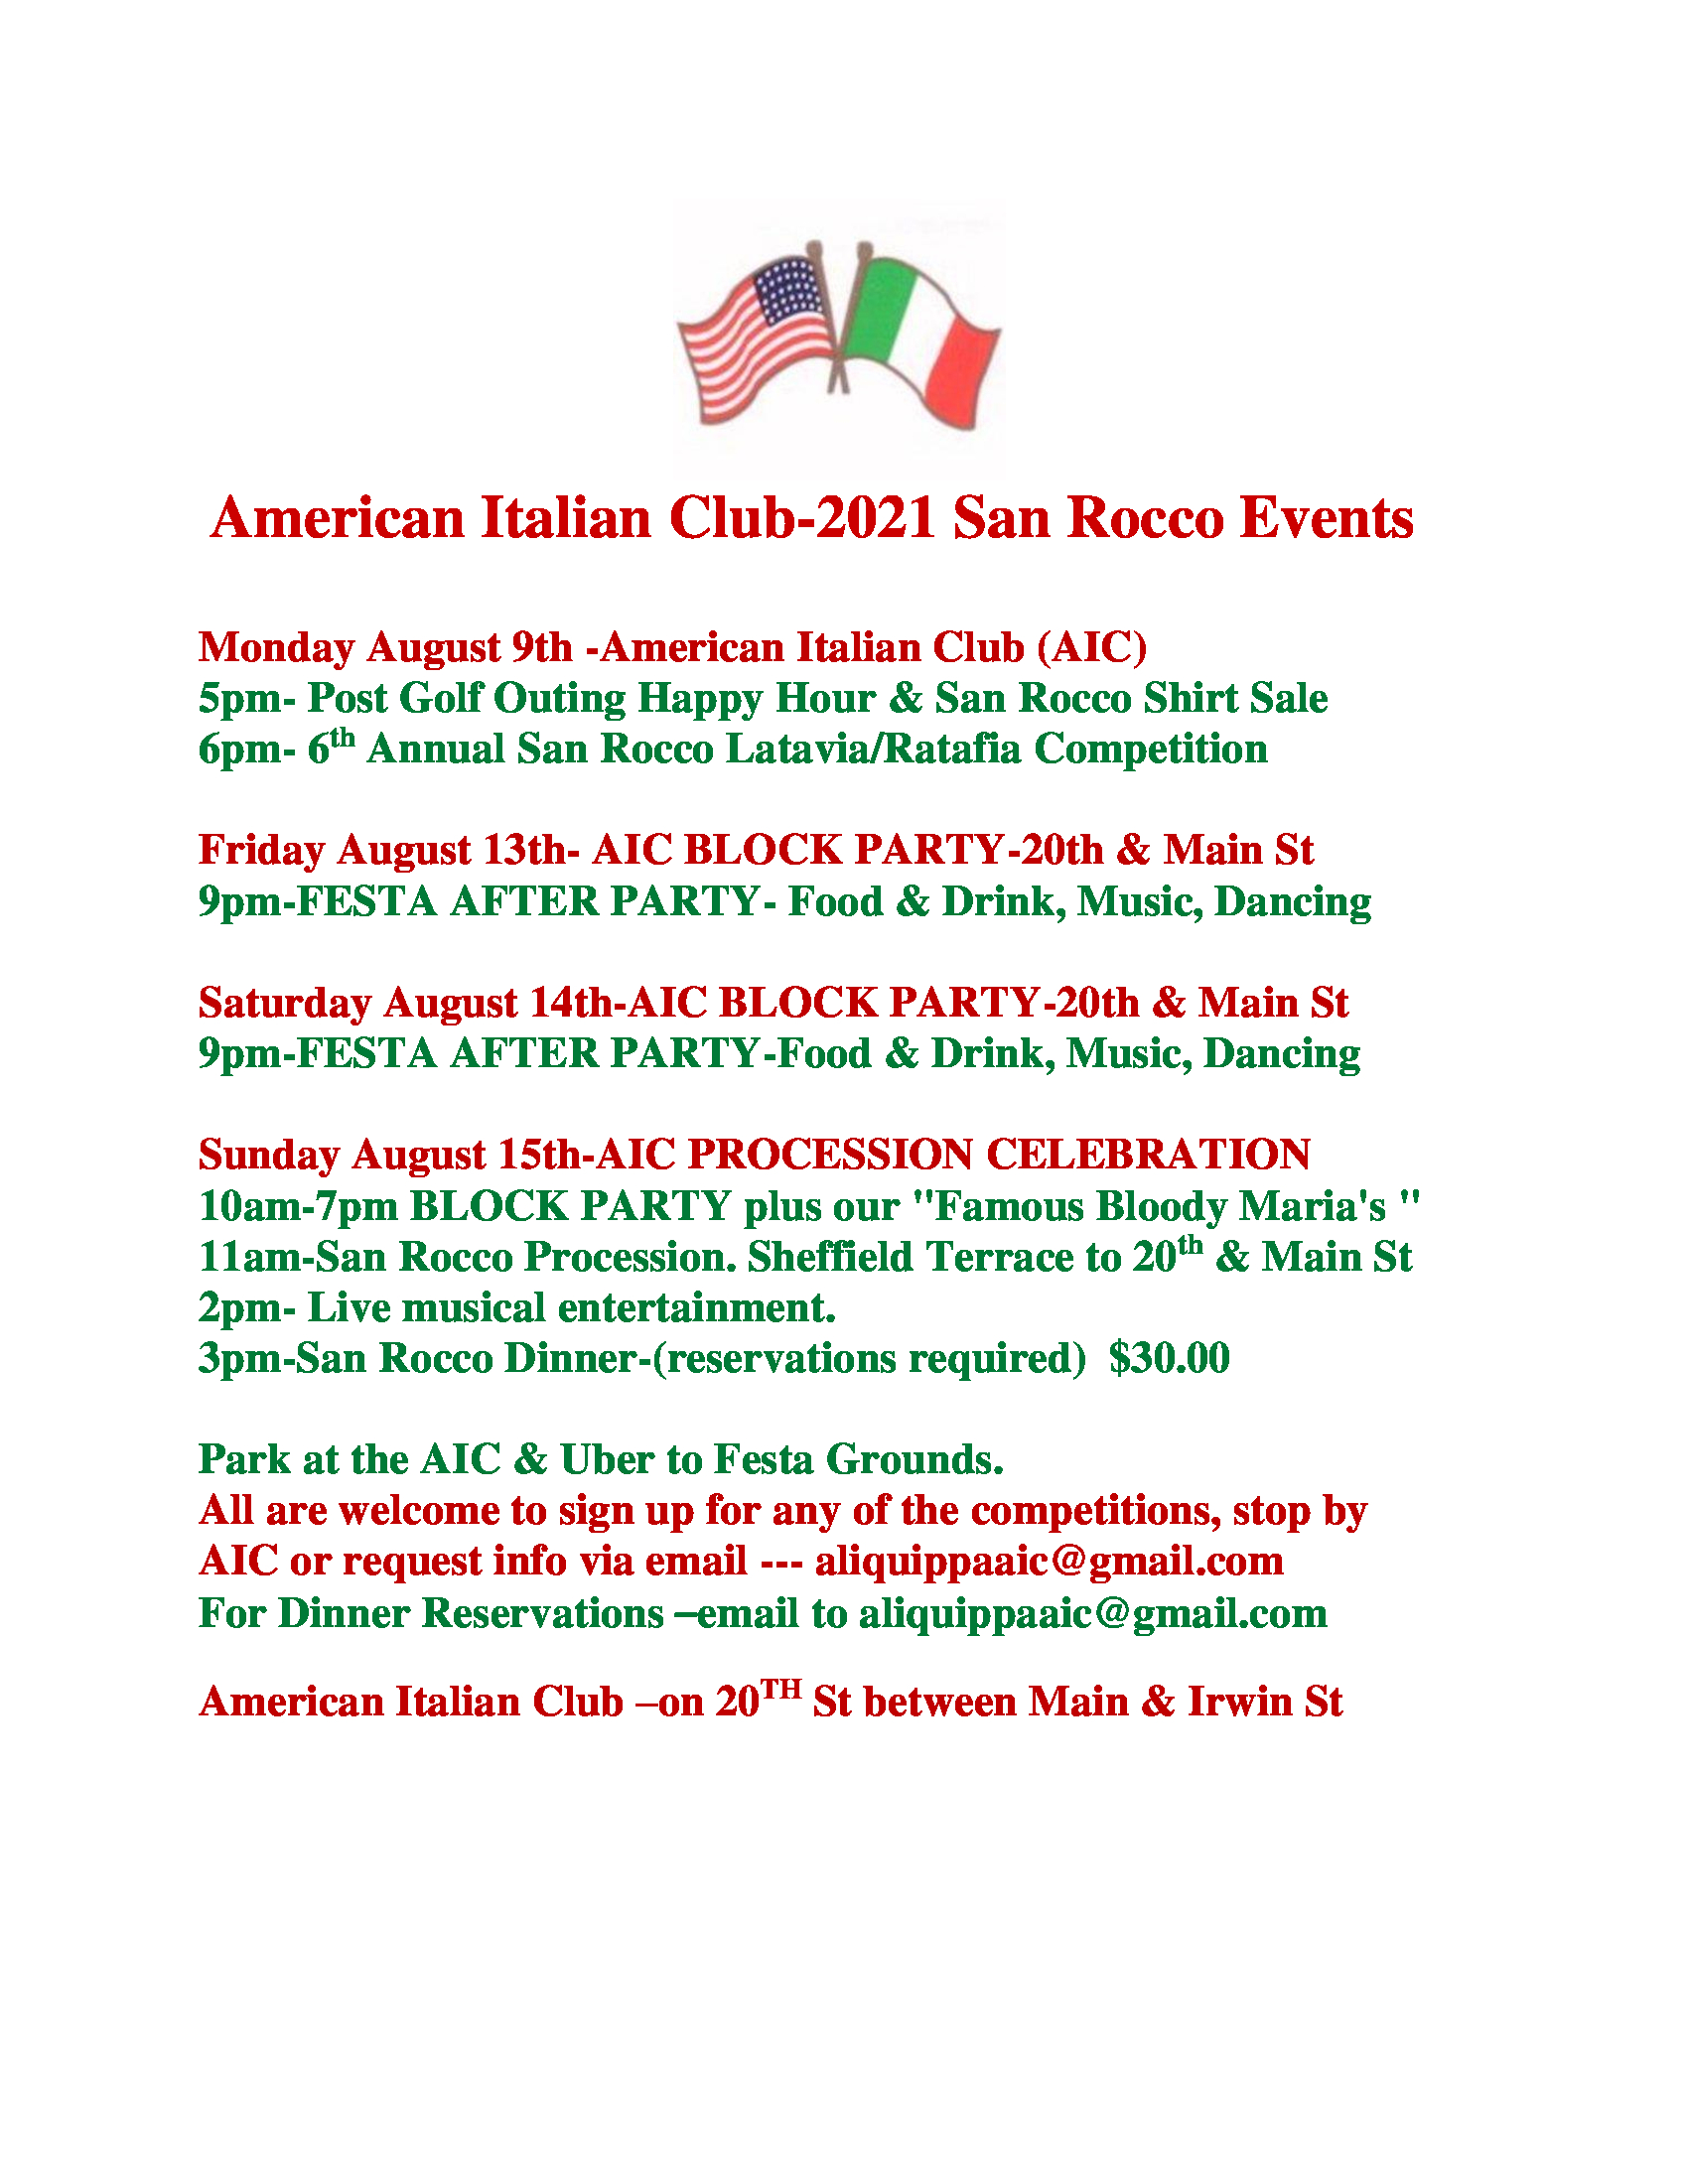 San Rocco Events at The American Italian Club